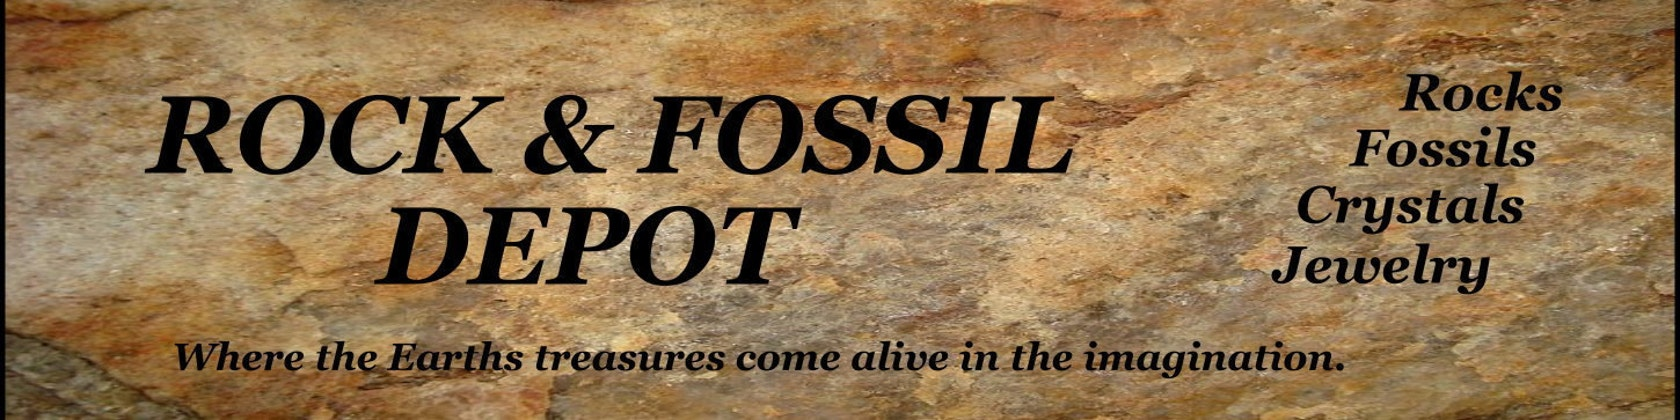 Fossils Minerals Crystals Jewelry by RockFossilDepot on Etsy